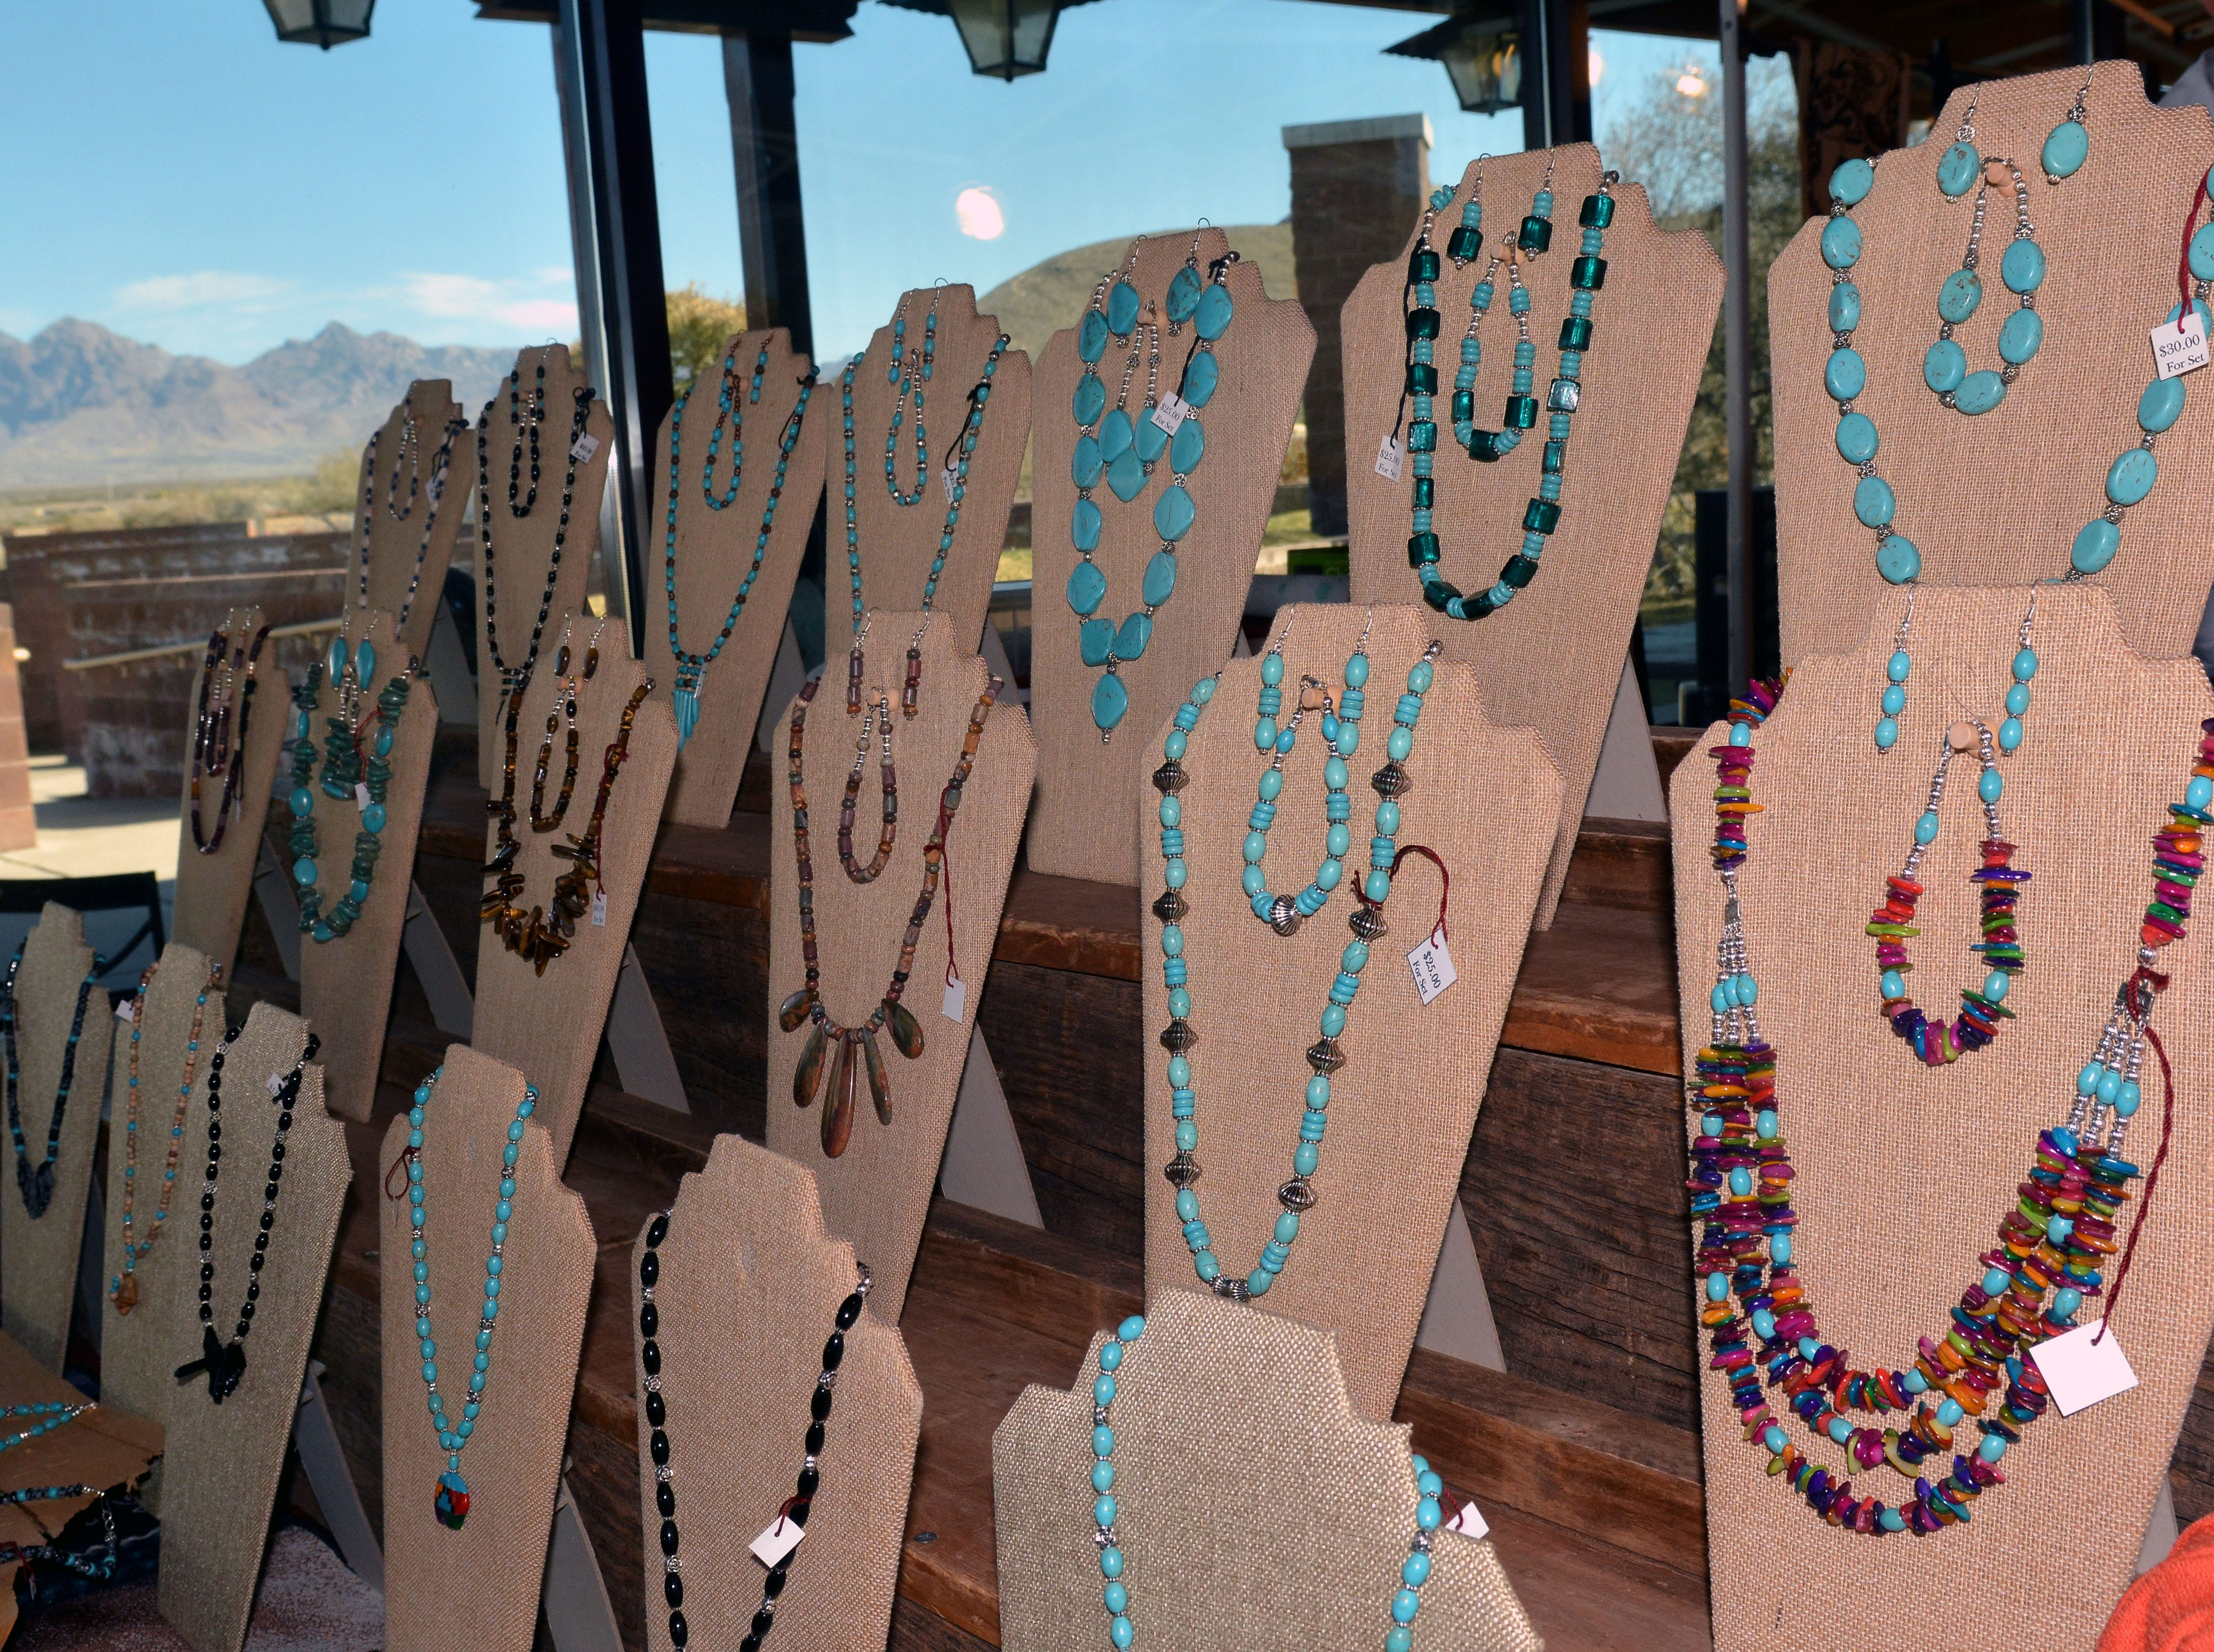 Plenty of local handmade turquoise jewelry is available from lots of local artists.  Photo taken 11/17/18.